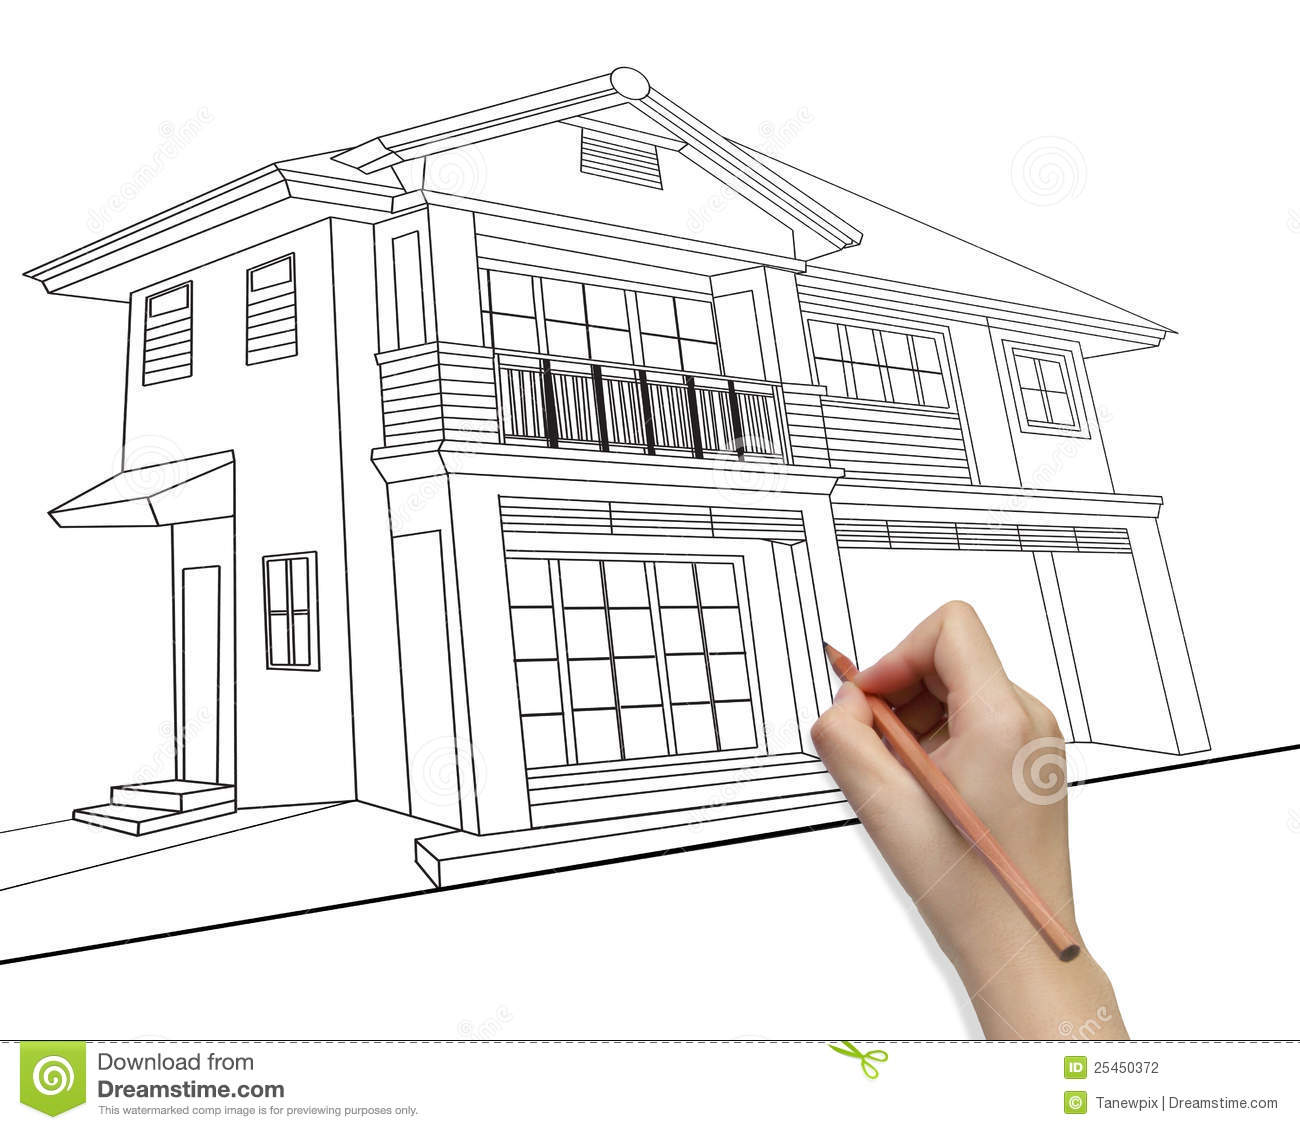 Hand drawing house model development concept stock for Construct a house online